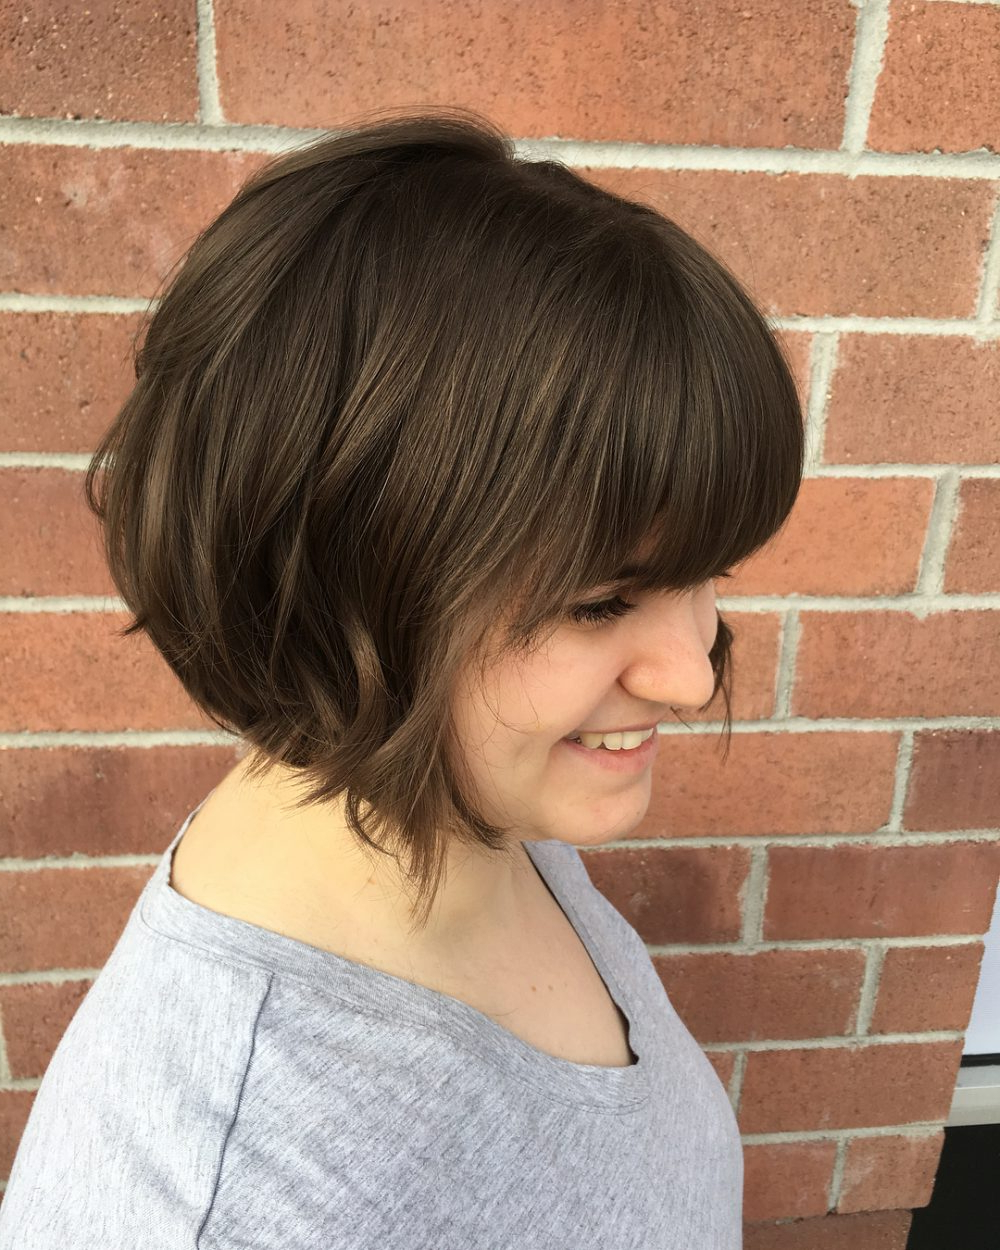 34 Greatest Short Haircuts And Hairstyles For Thick Hair For 2018 Pertaining To Wavy Messy Pixie Hairstyles With Bangs (View 16 of 25)